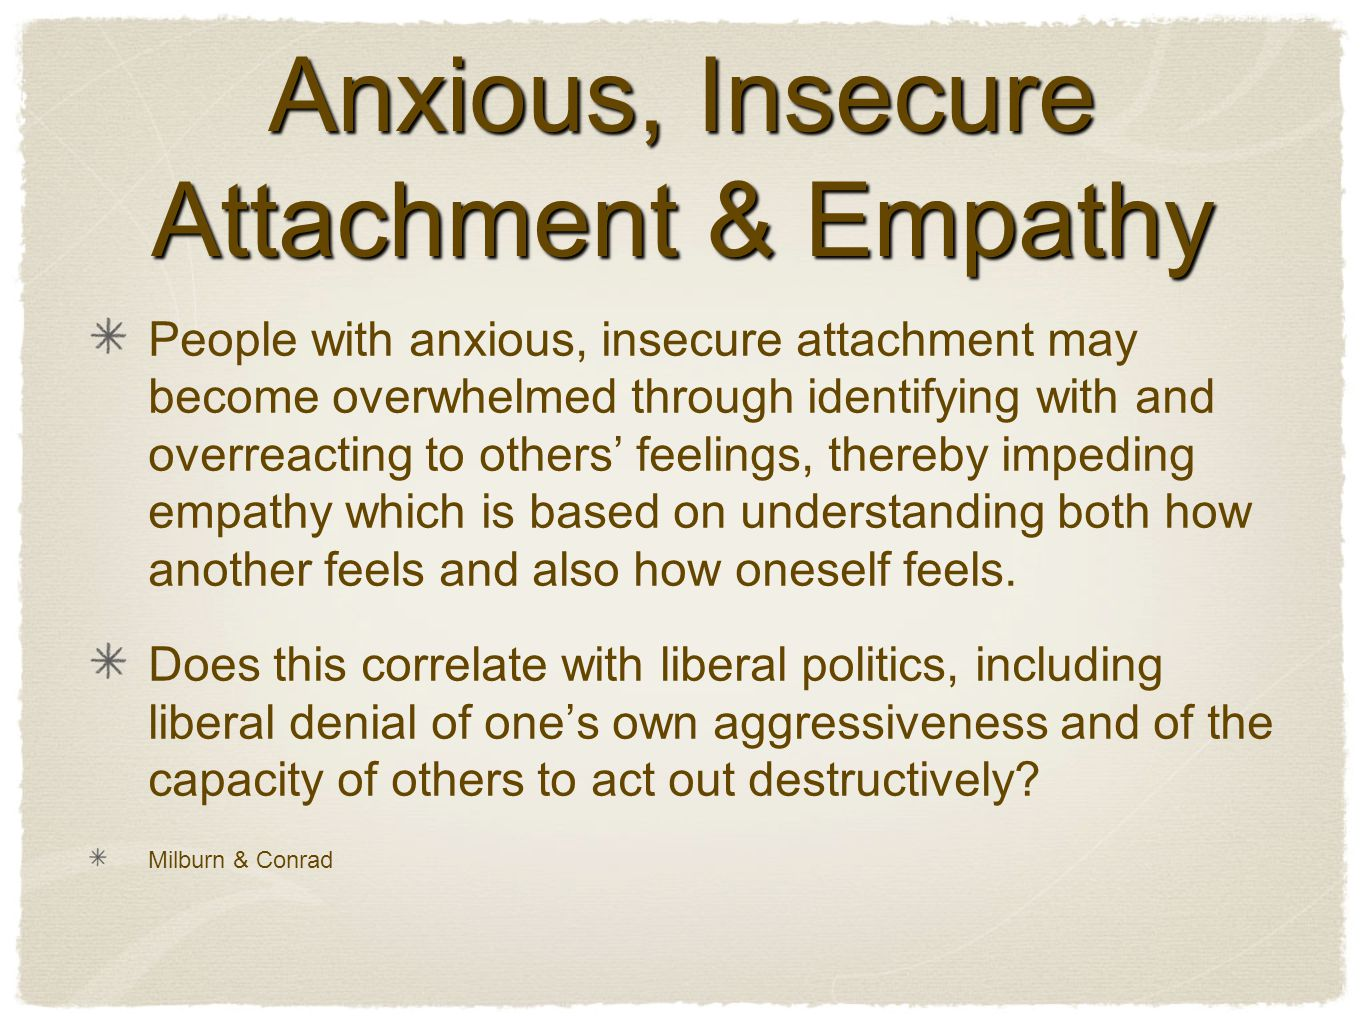 Anxious, Insecure Attachment & Empathy People with anxious, insecure attachment may become overwhelmed through identifying with and overreacting to others' feelings, thereby impeding empathy which is based on understanding both how another feels and also how oneself feels.